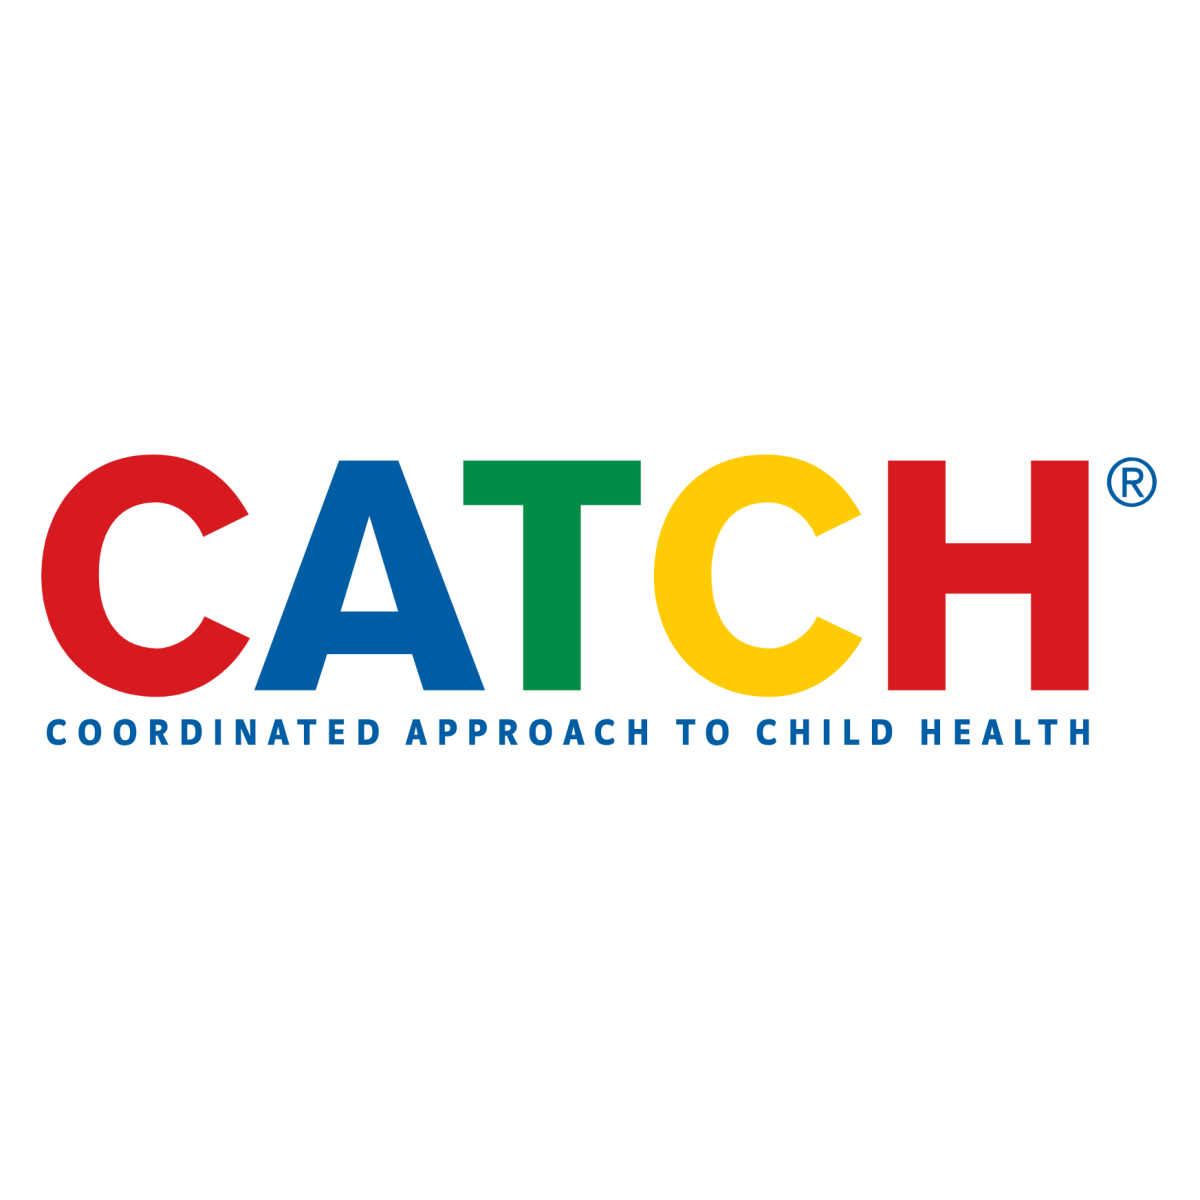 CATCH Logo - Coordinated Approach to Child Health